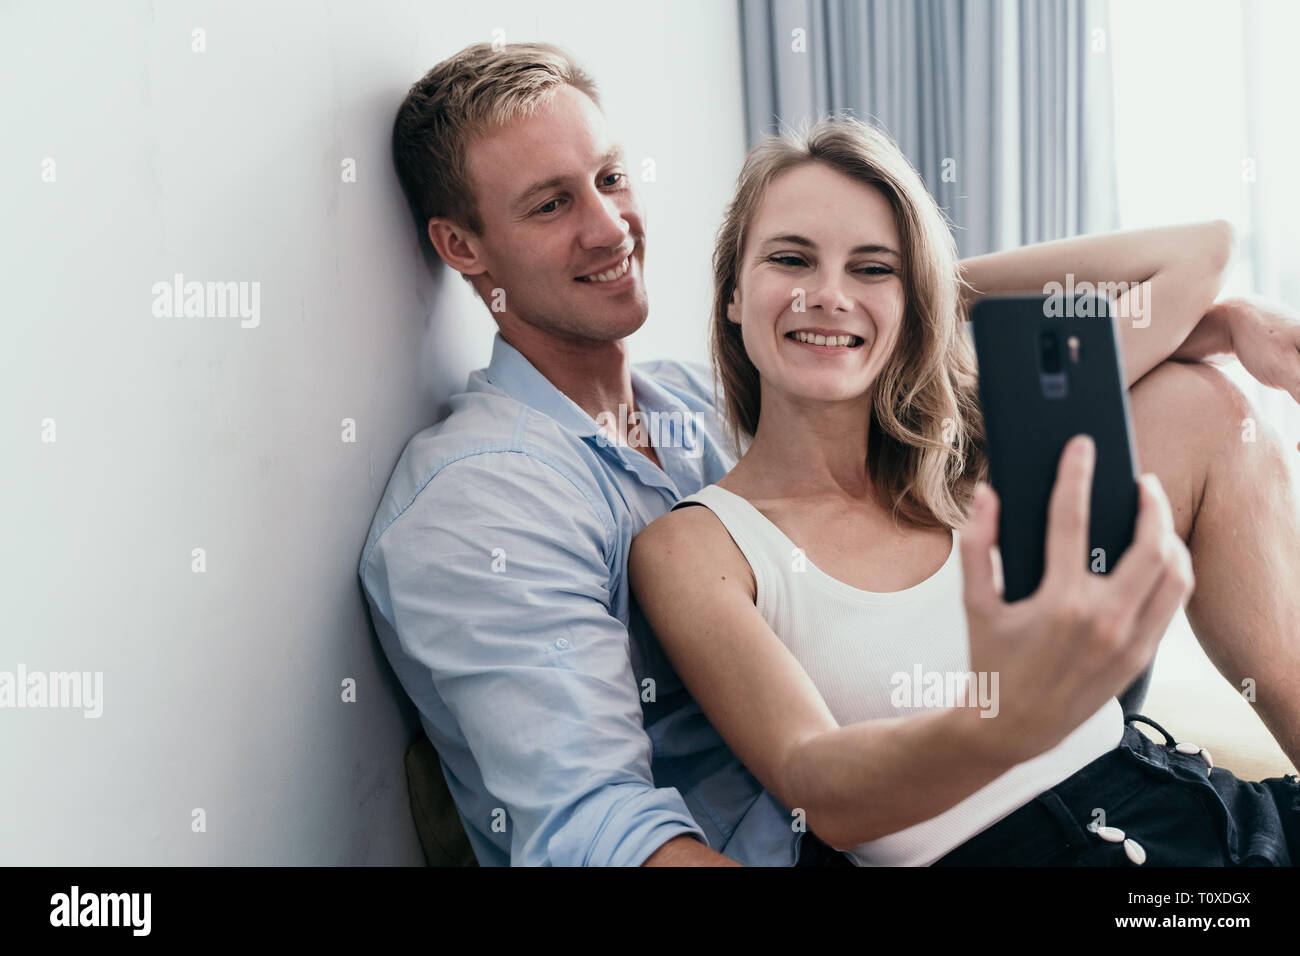 young lovely couple take selfie together - Stock Image